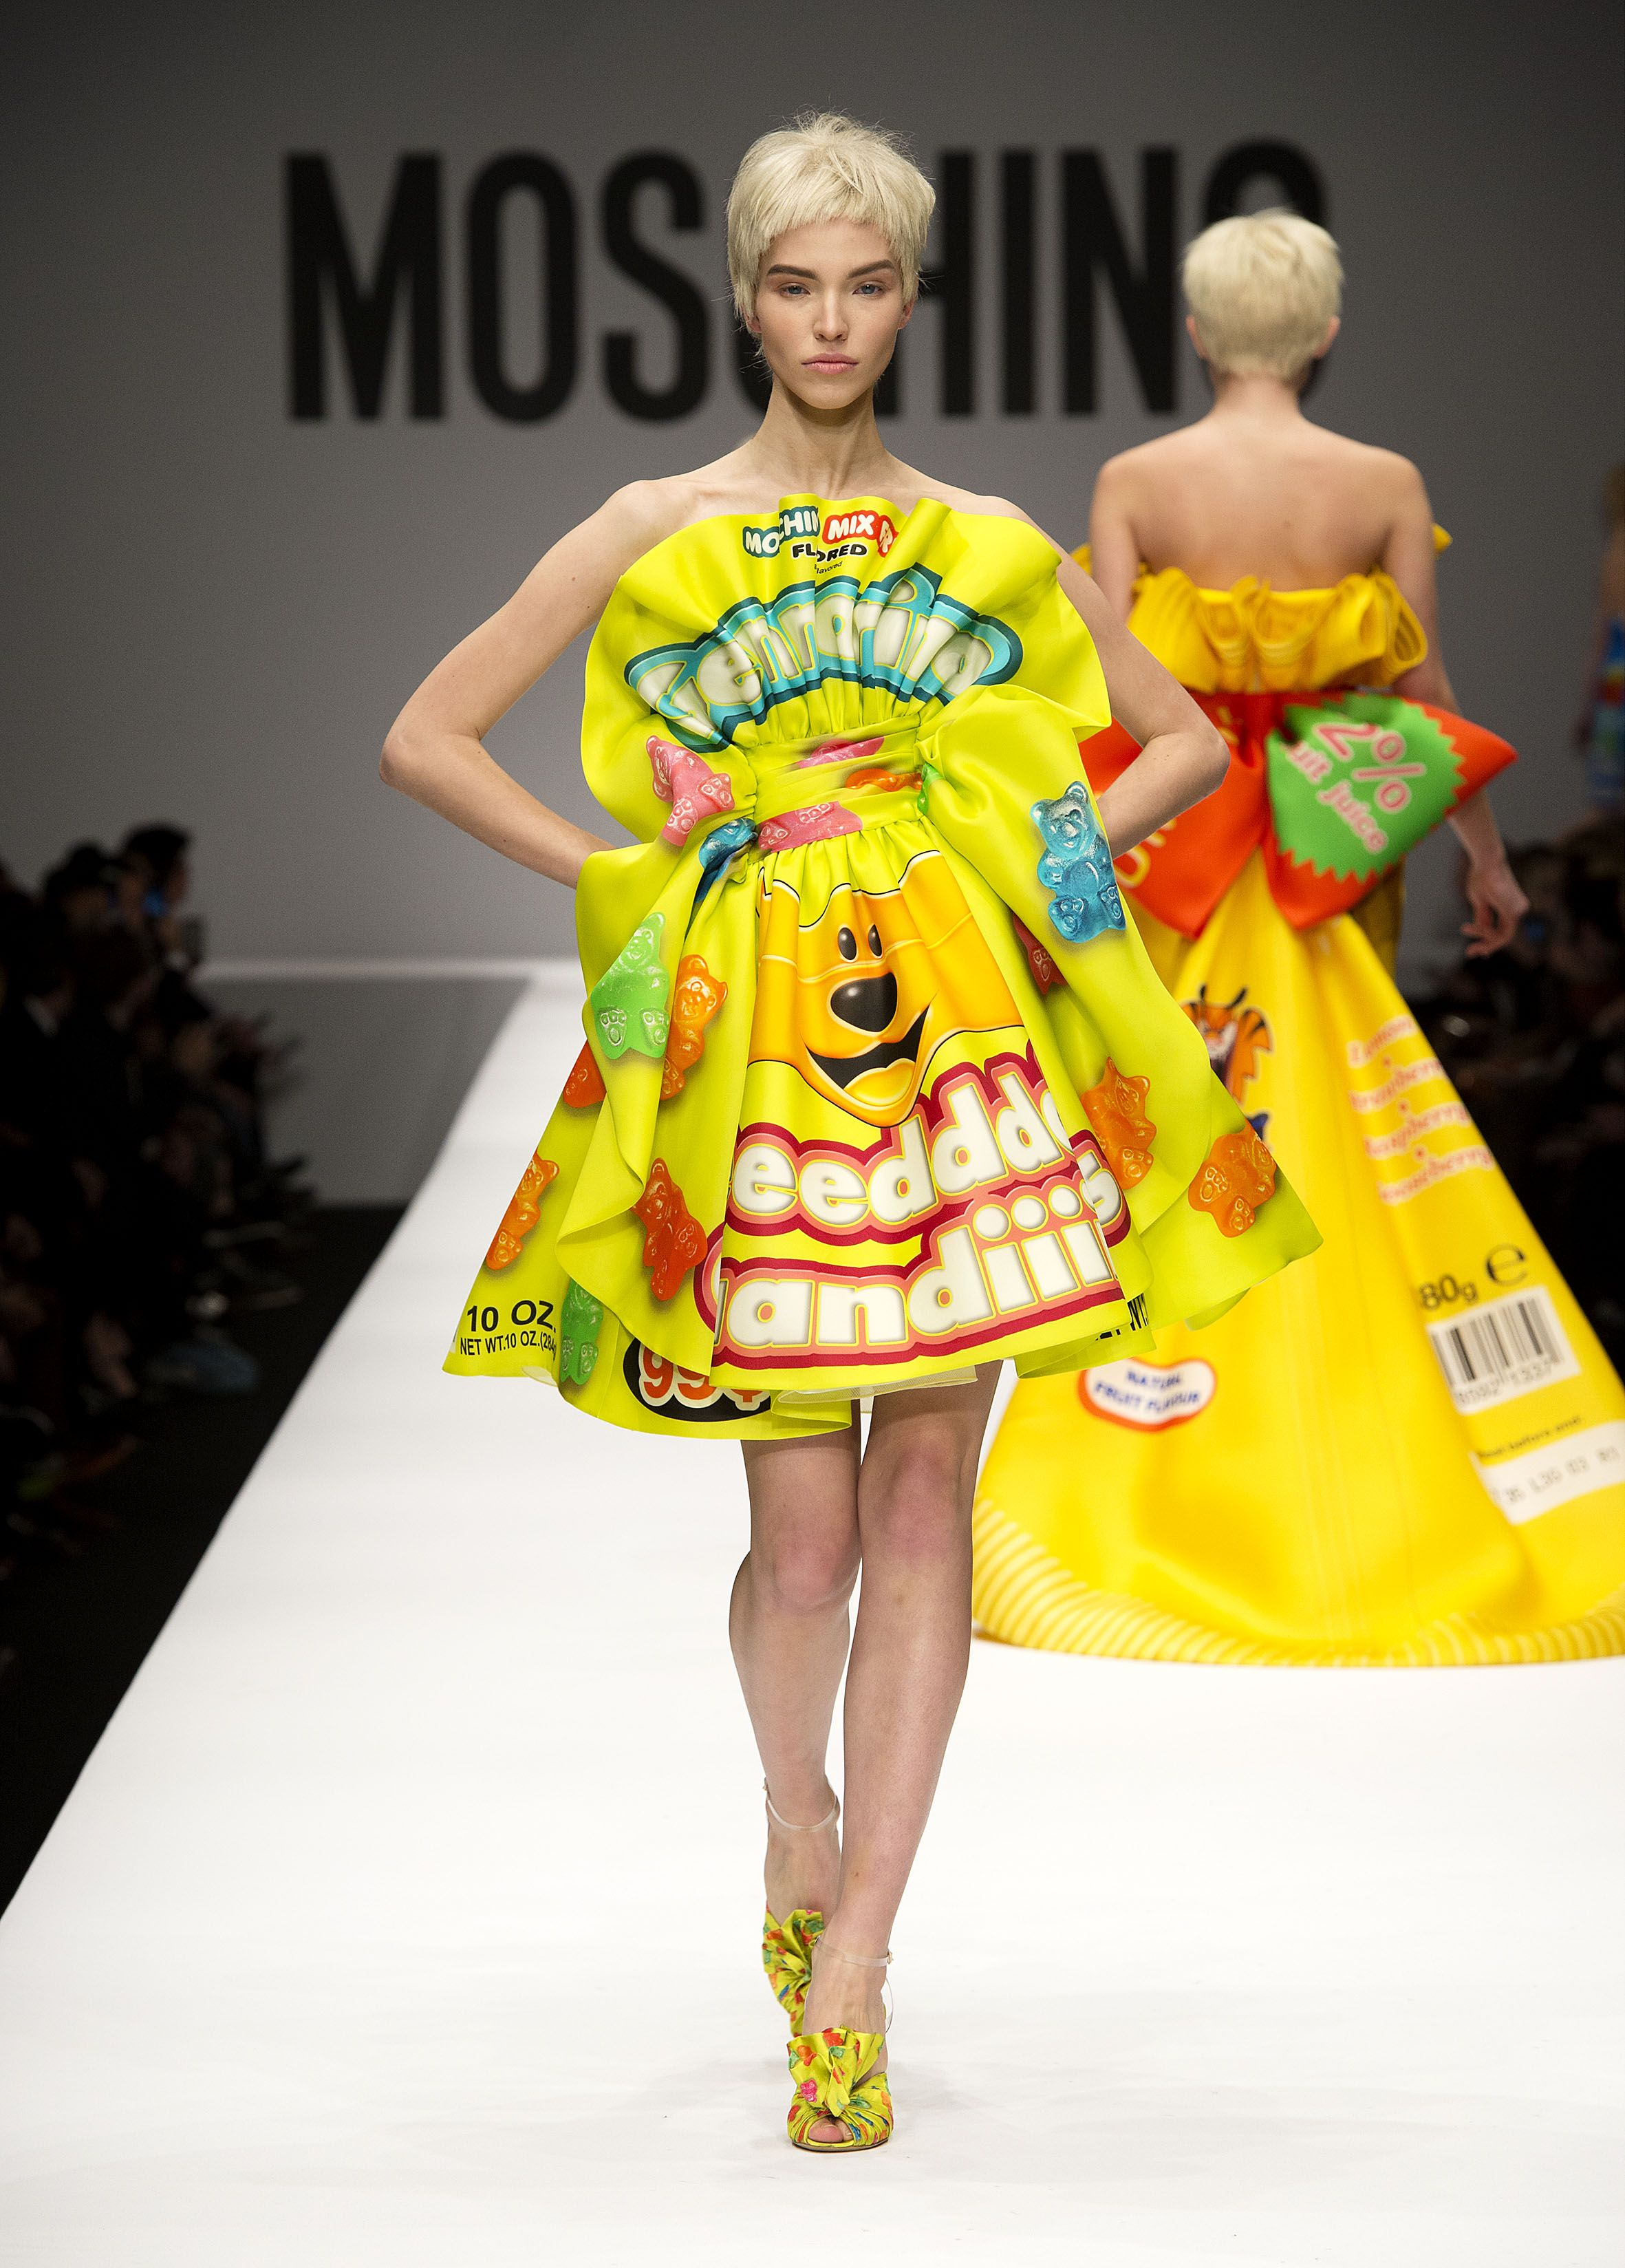 Moschino Spring/Summer 2014 fashion show - #Moschino - See more on www.moschino.com